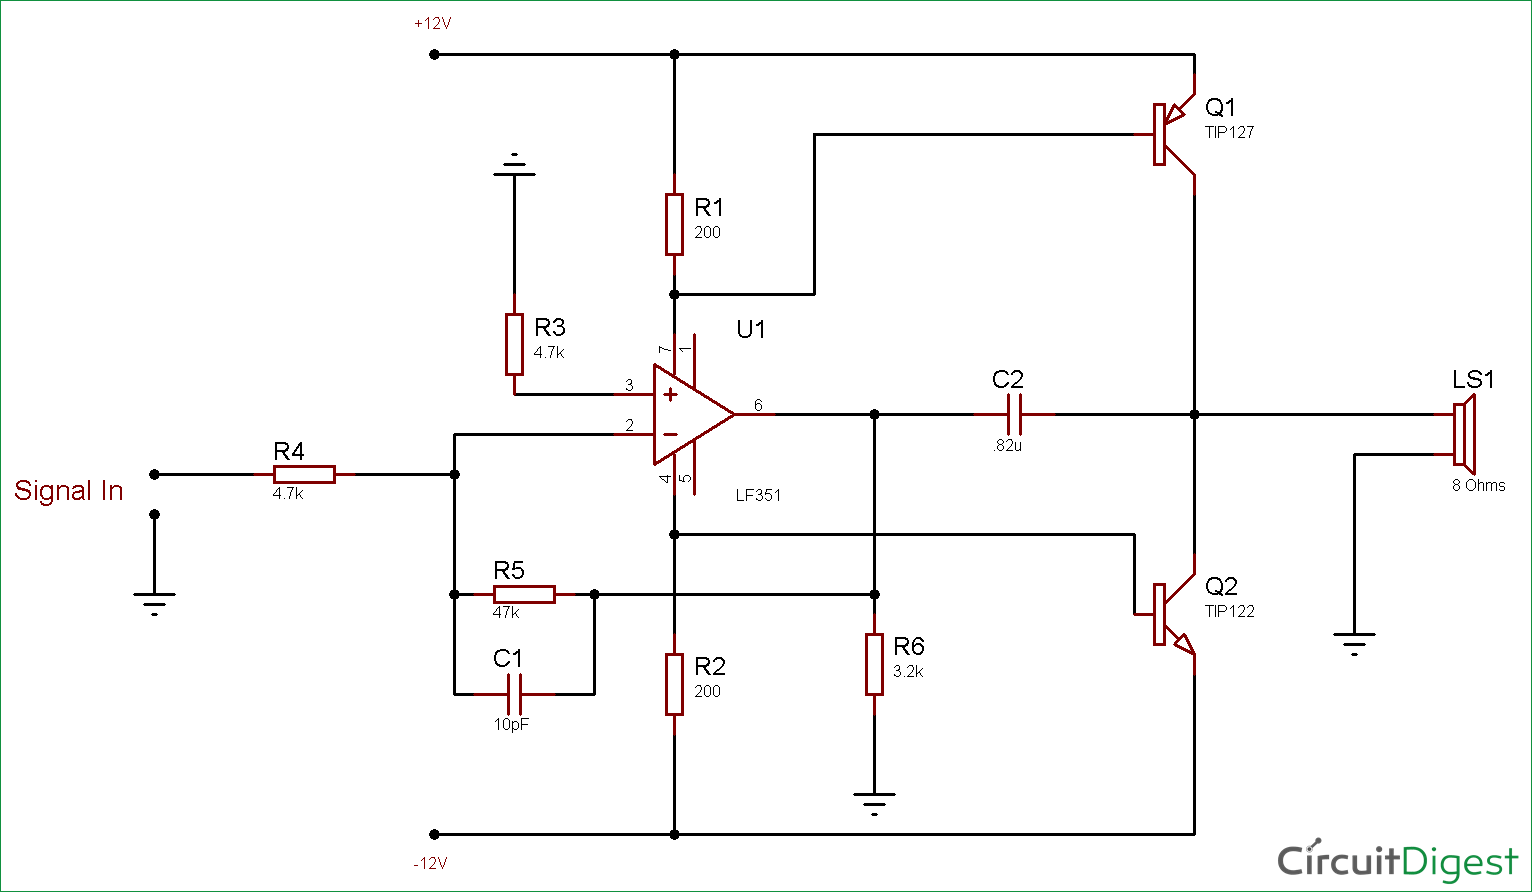 schematic wiring diagram schematic audio amplifier circuit 200w